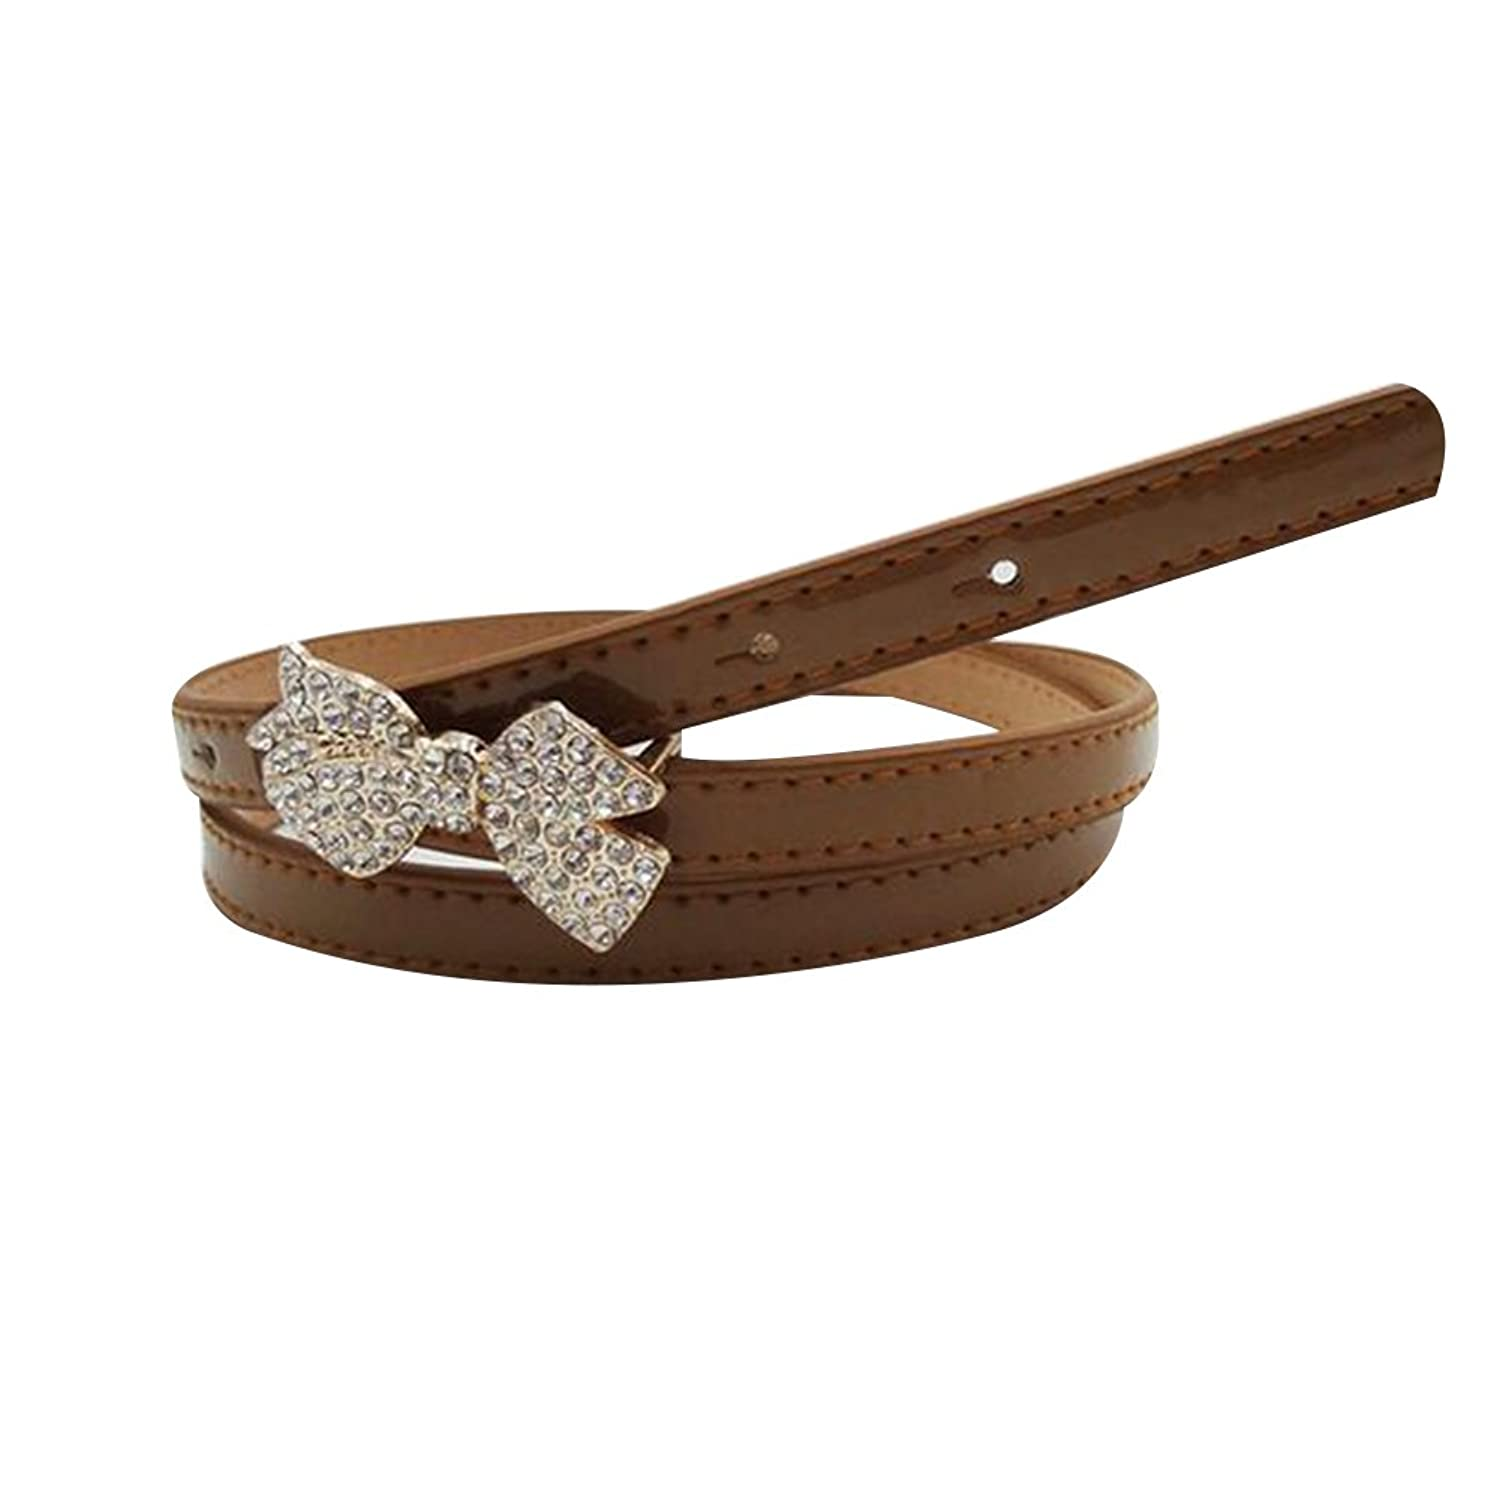 Sitong women's diamond bow leather belt(8 colors)